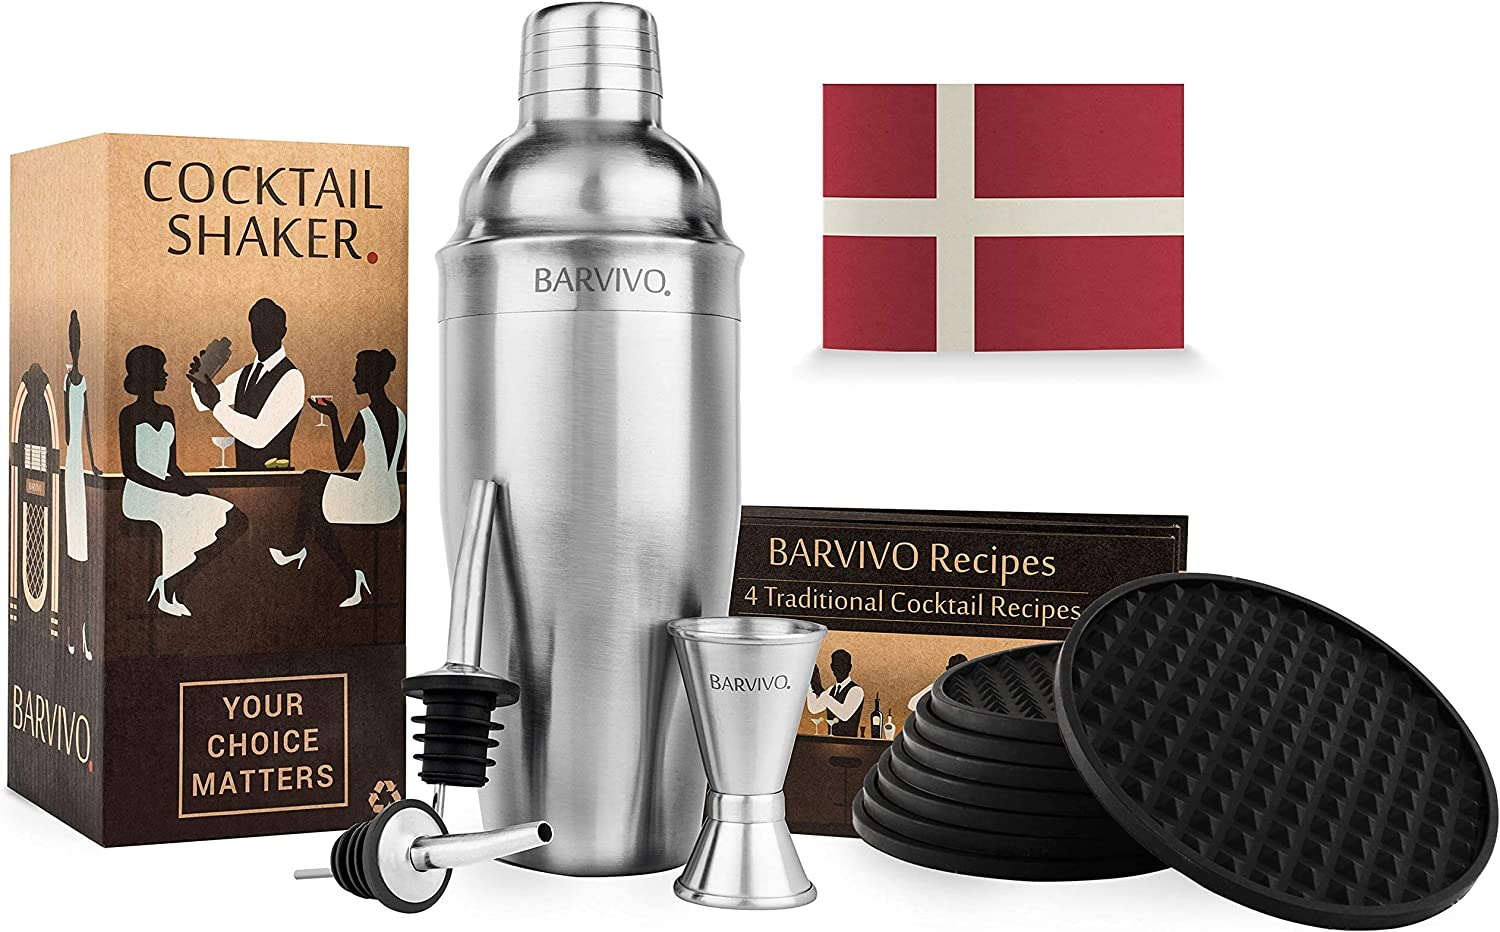 BARVIVO Cocktail Shaker and Coasters an Serve Product Beautiful - Cheap sale Bundle